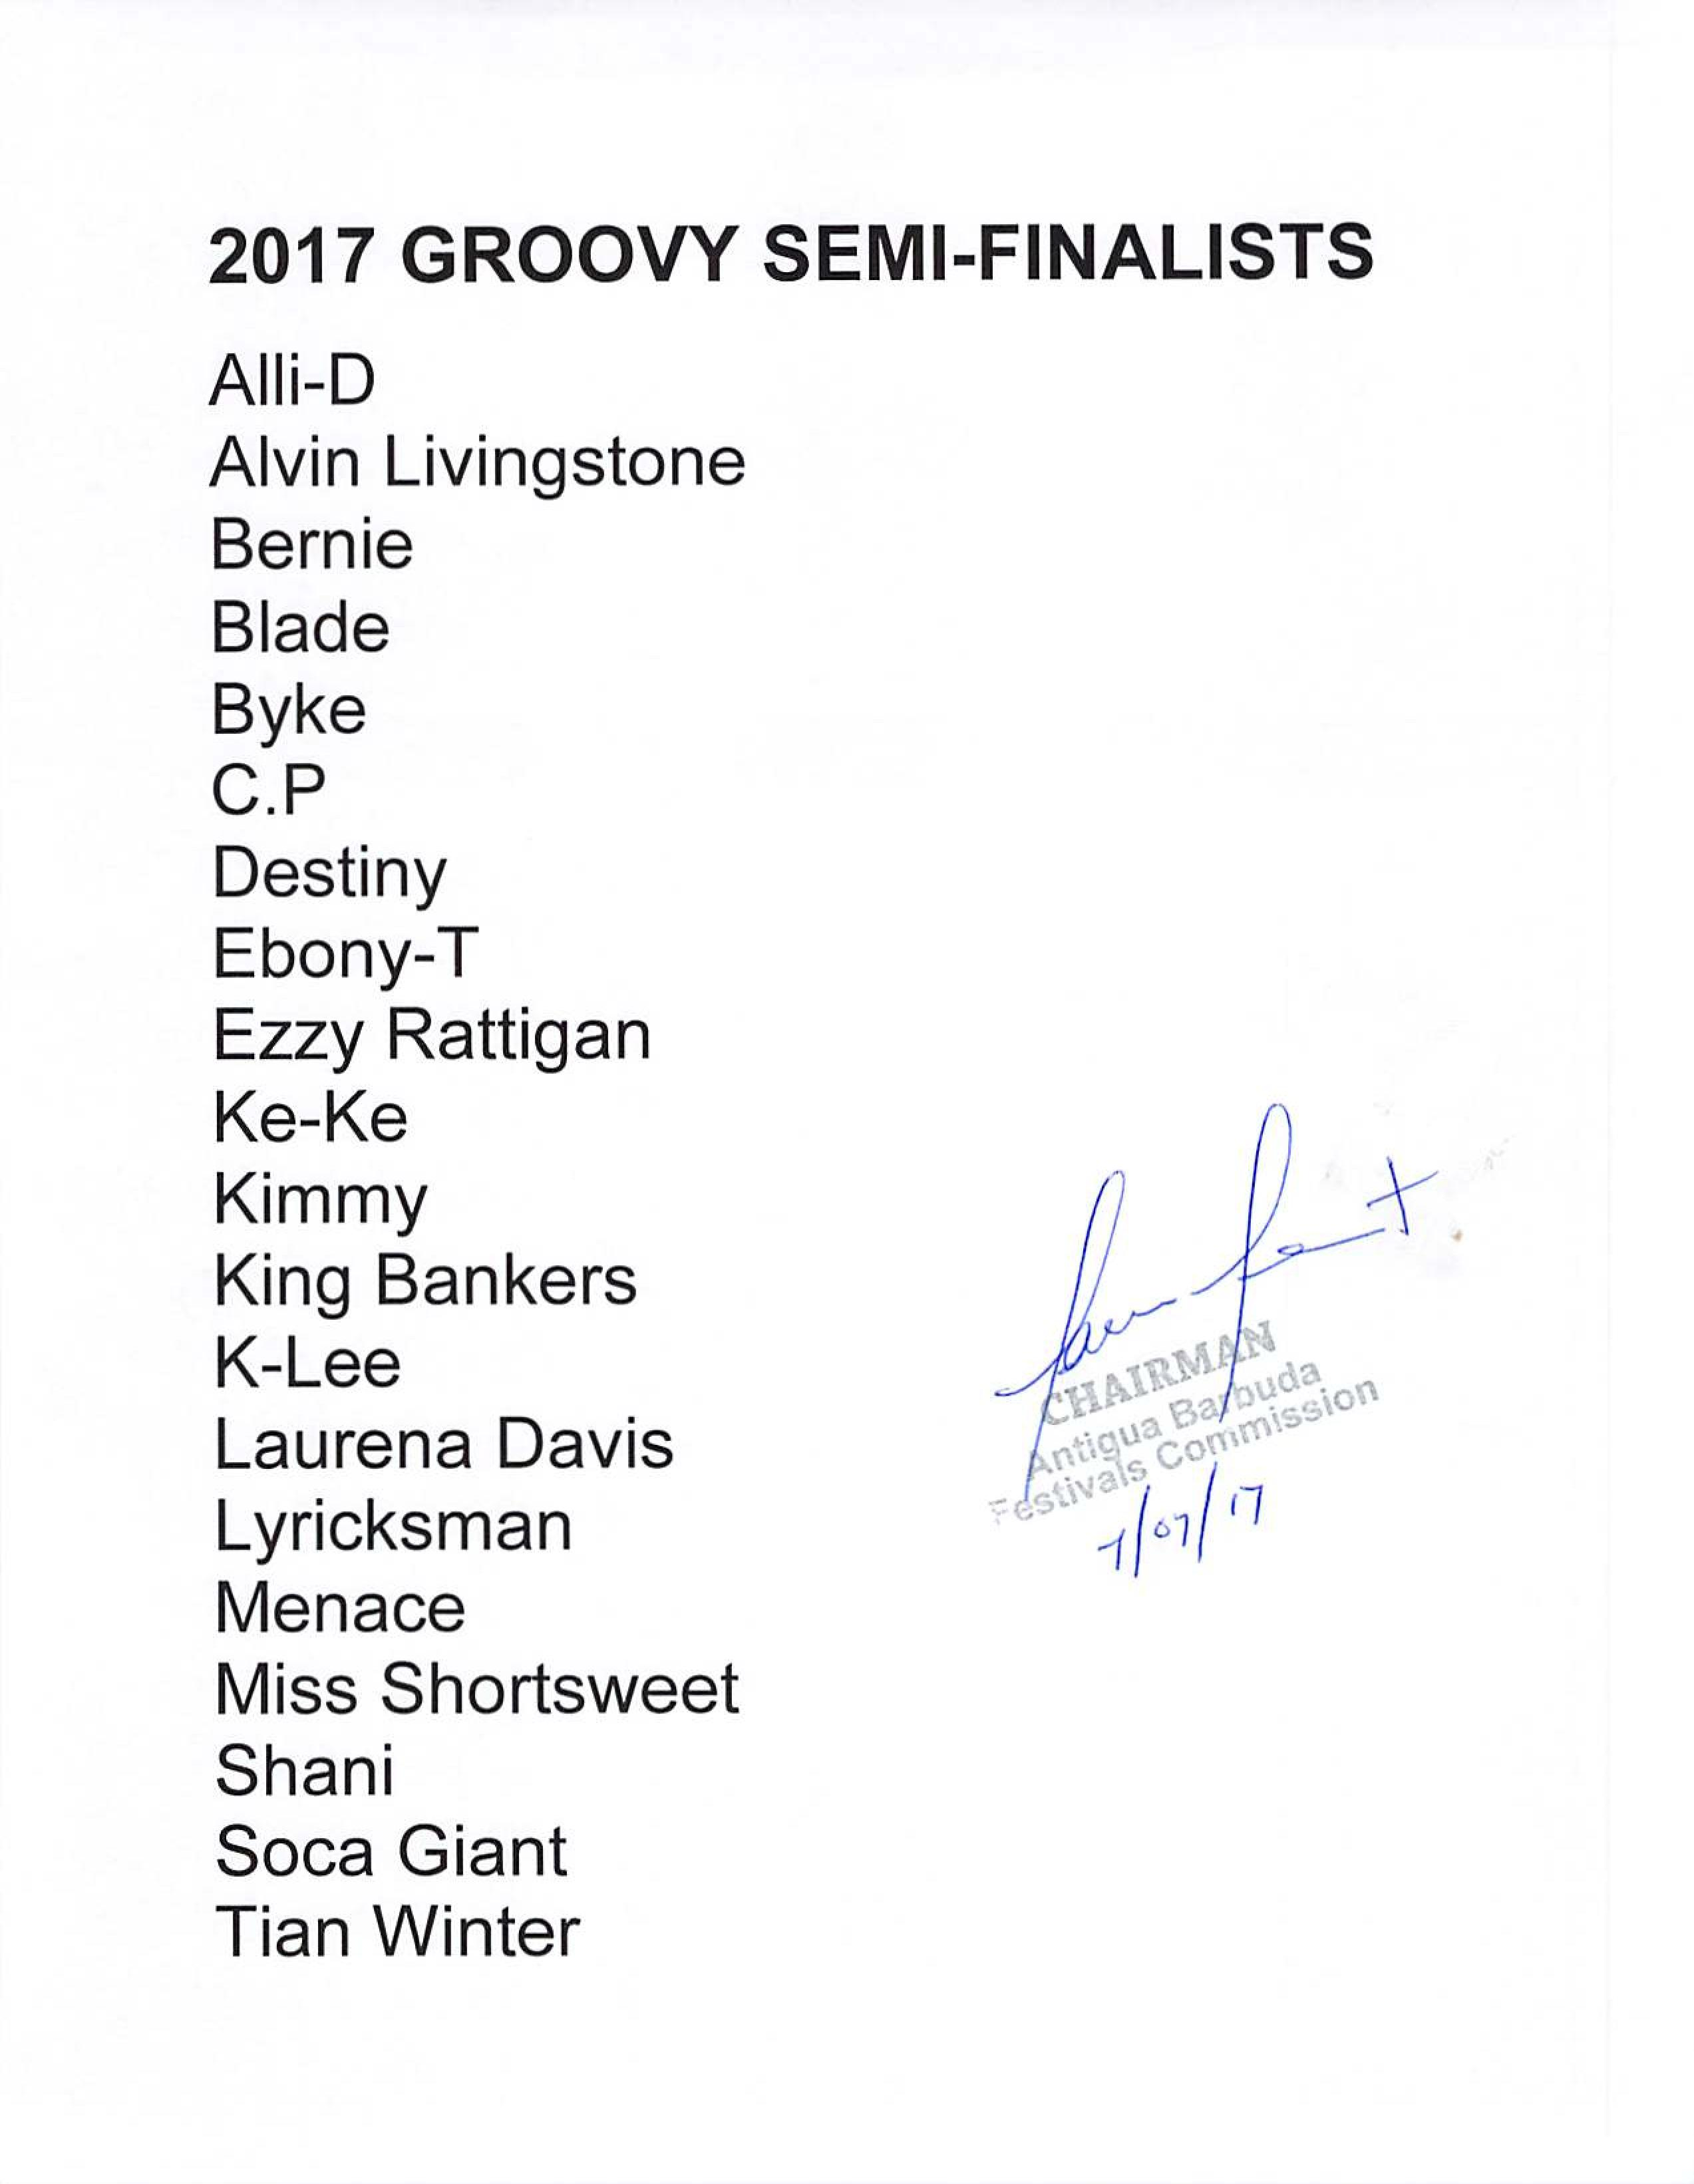 Groovy And Jumpy Semi Finalists 2017 Page 001